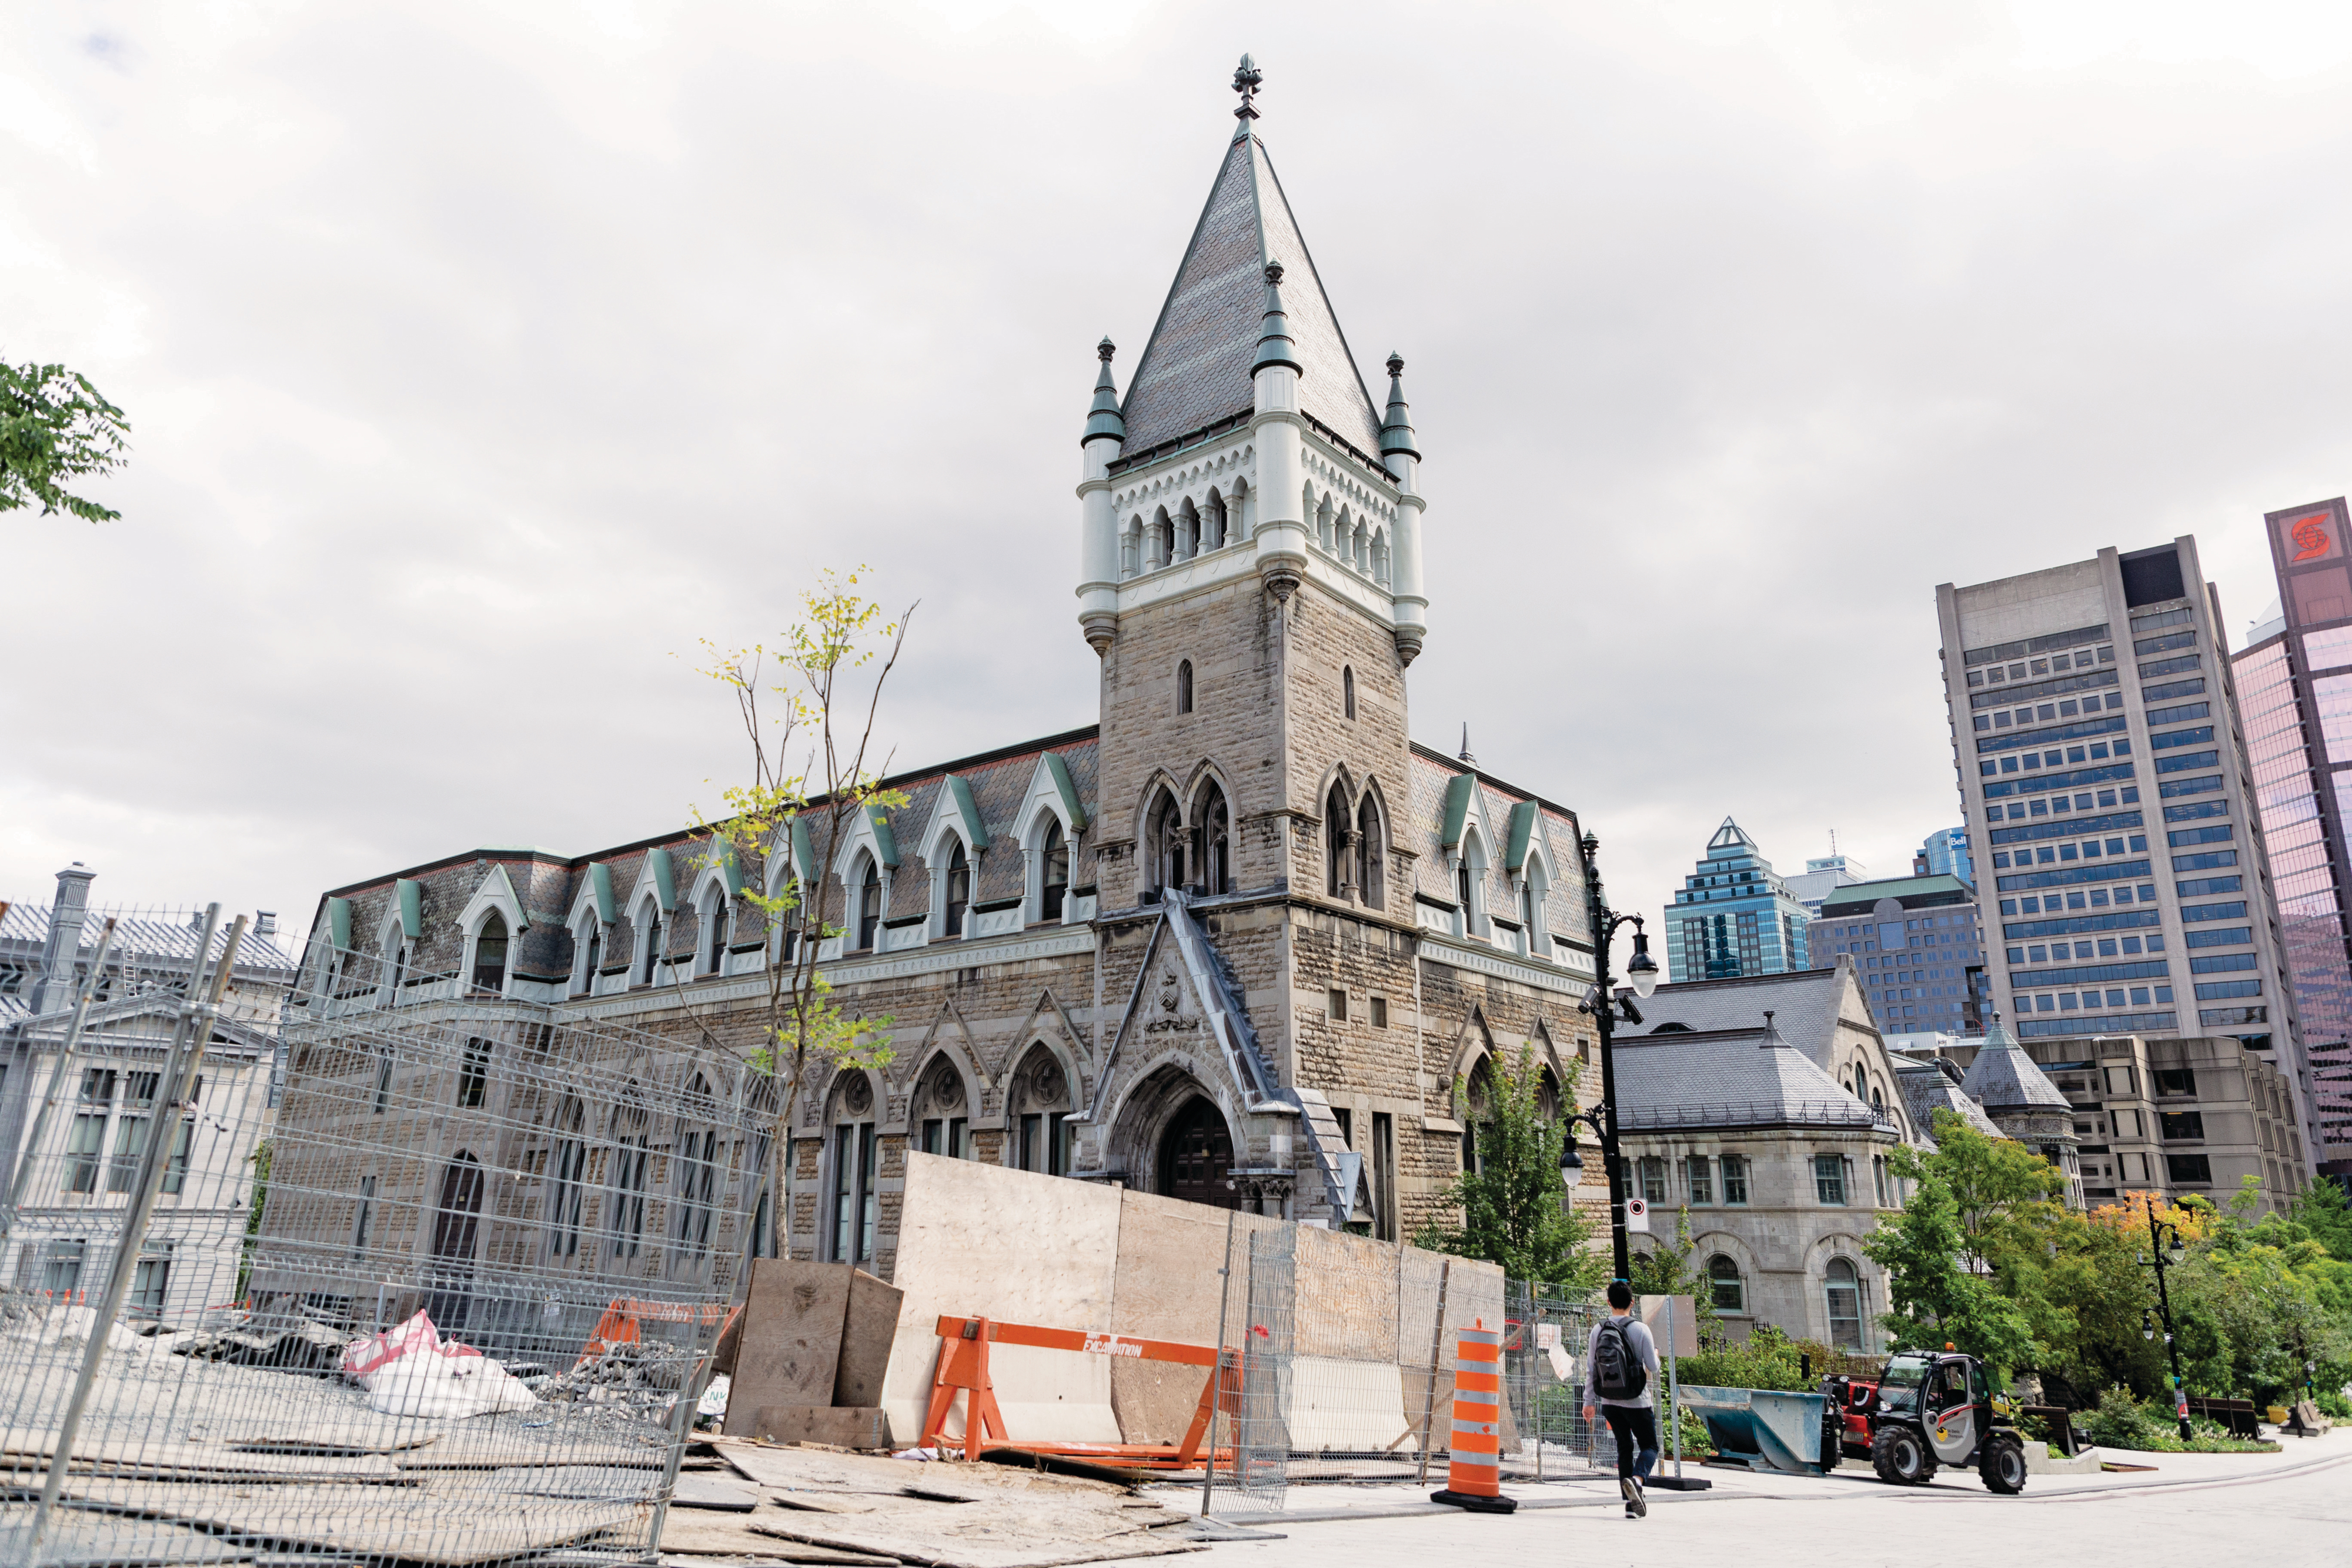 Many buildings at McGill are being repaired, including Morrice Hall (Photograph by Stacy Lee)